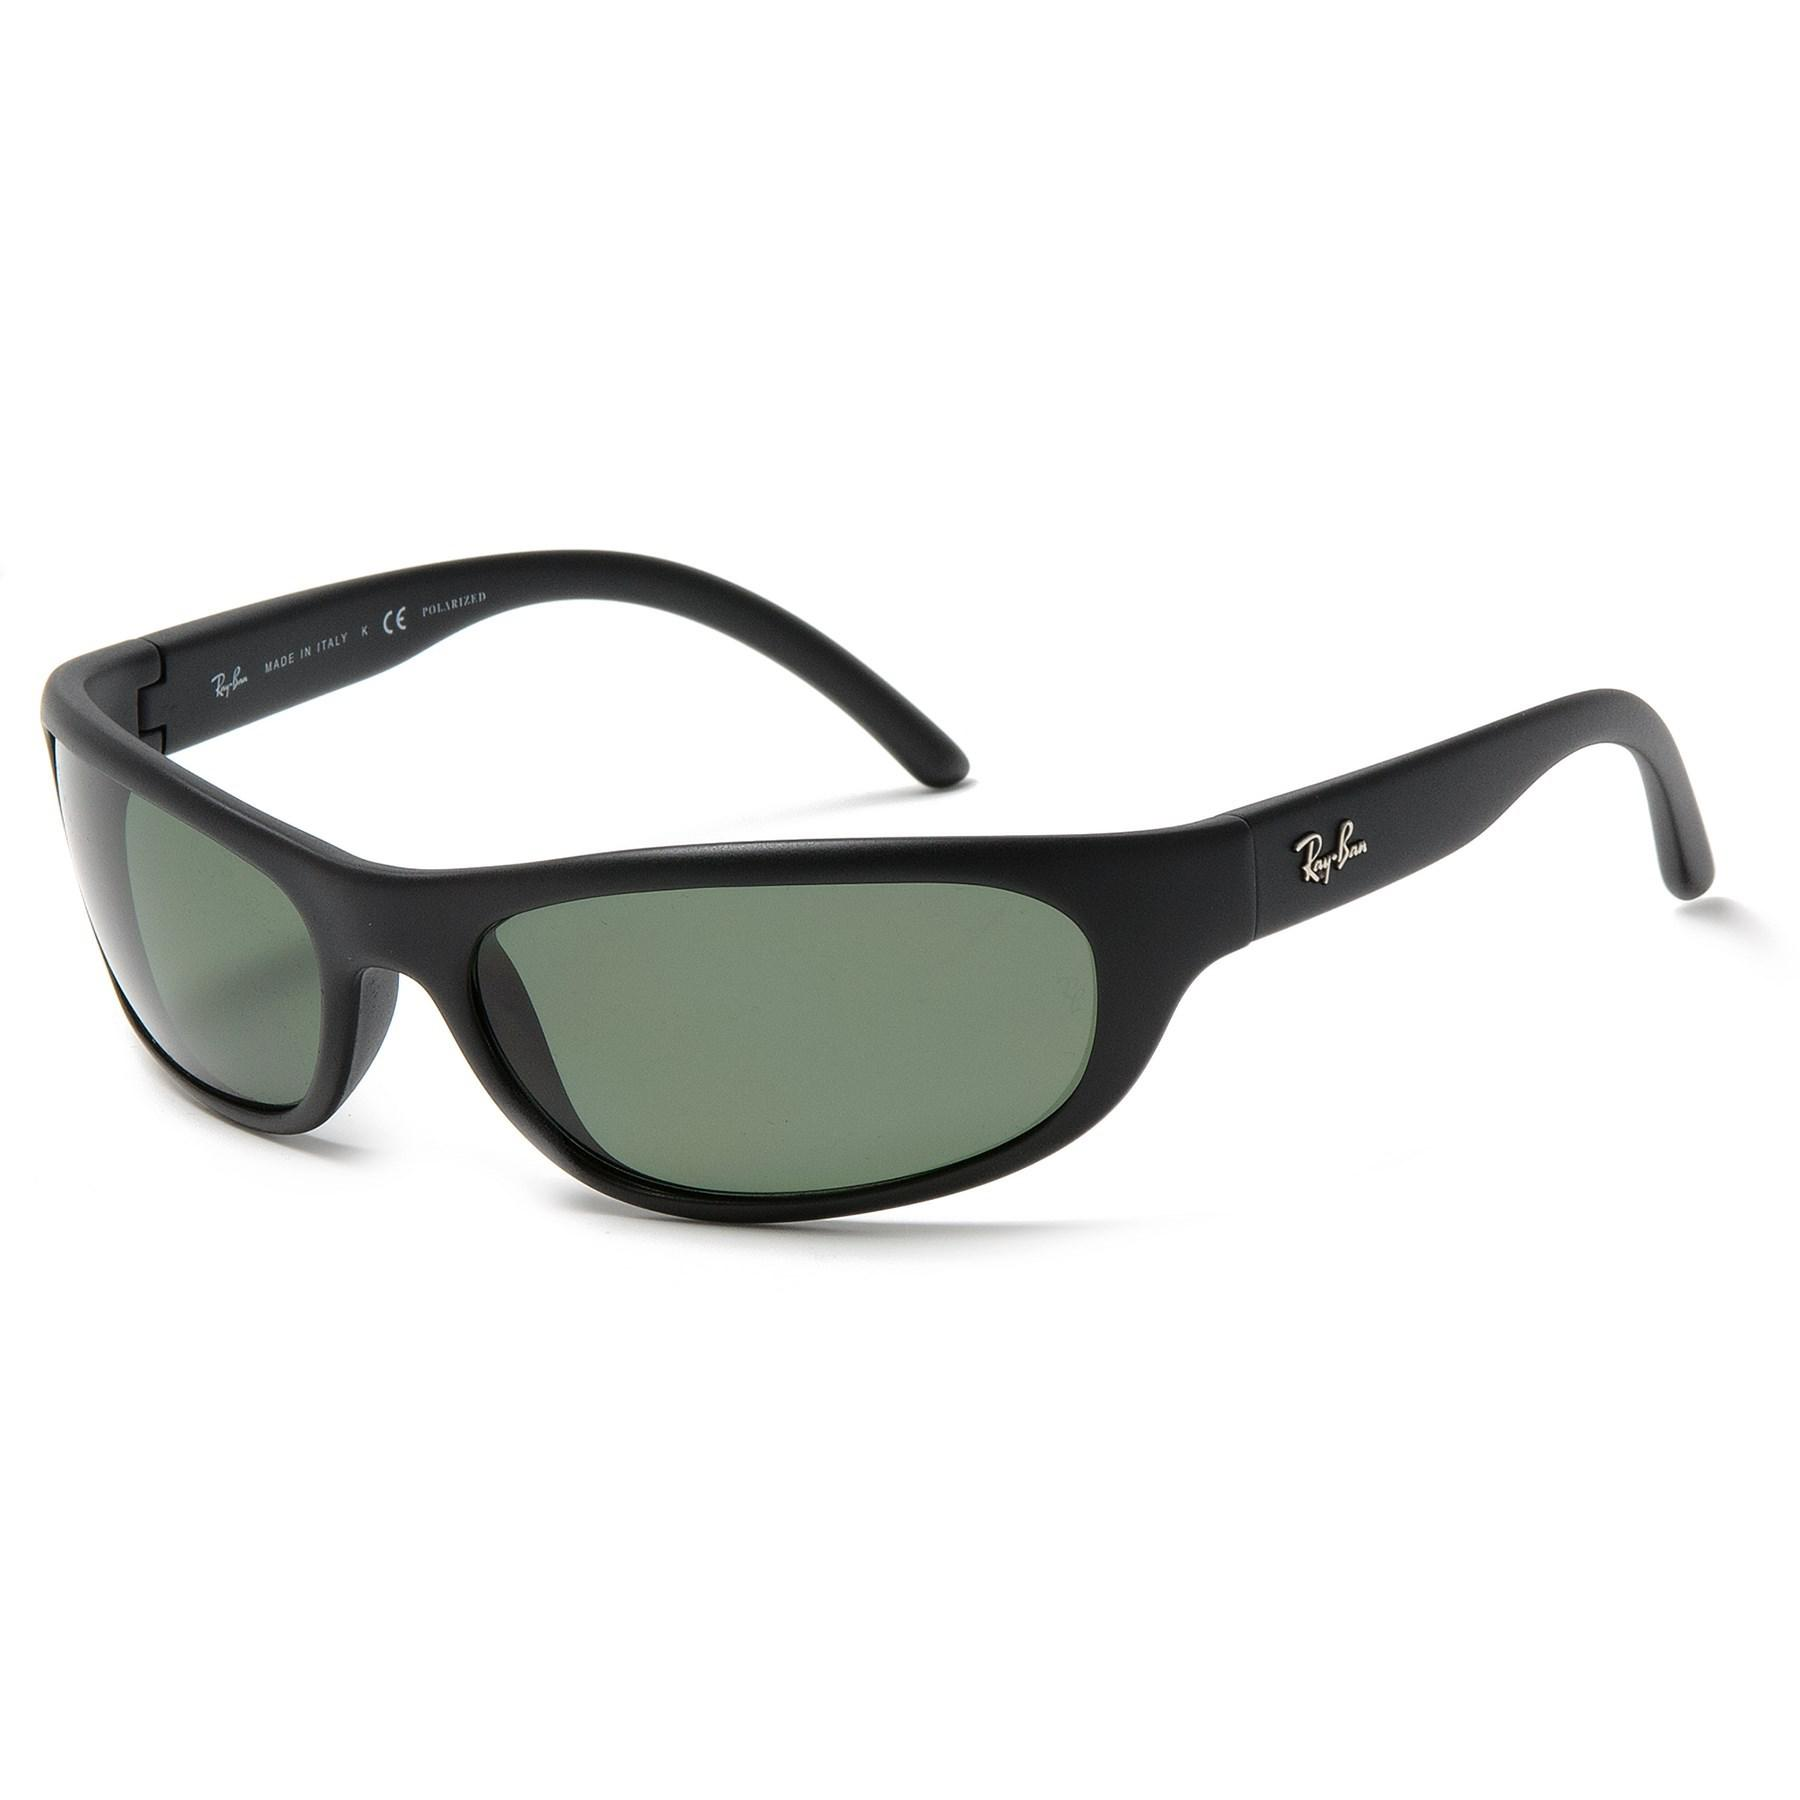 9affc11d3195 Lyst - Ray-Ban Rb4033 Sunglasses in Black for Men